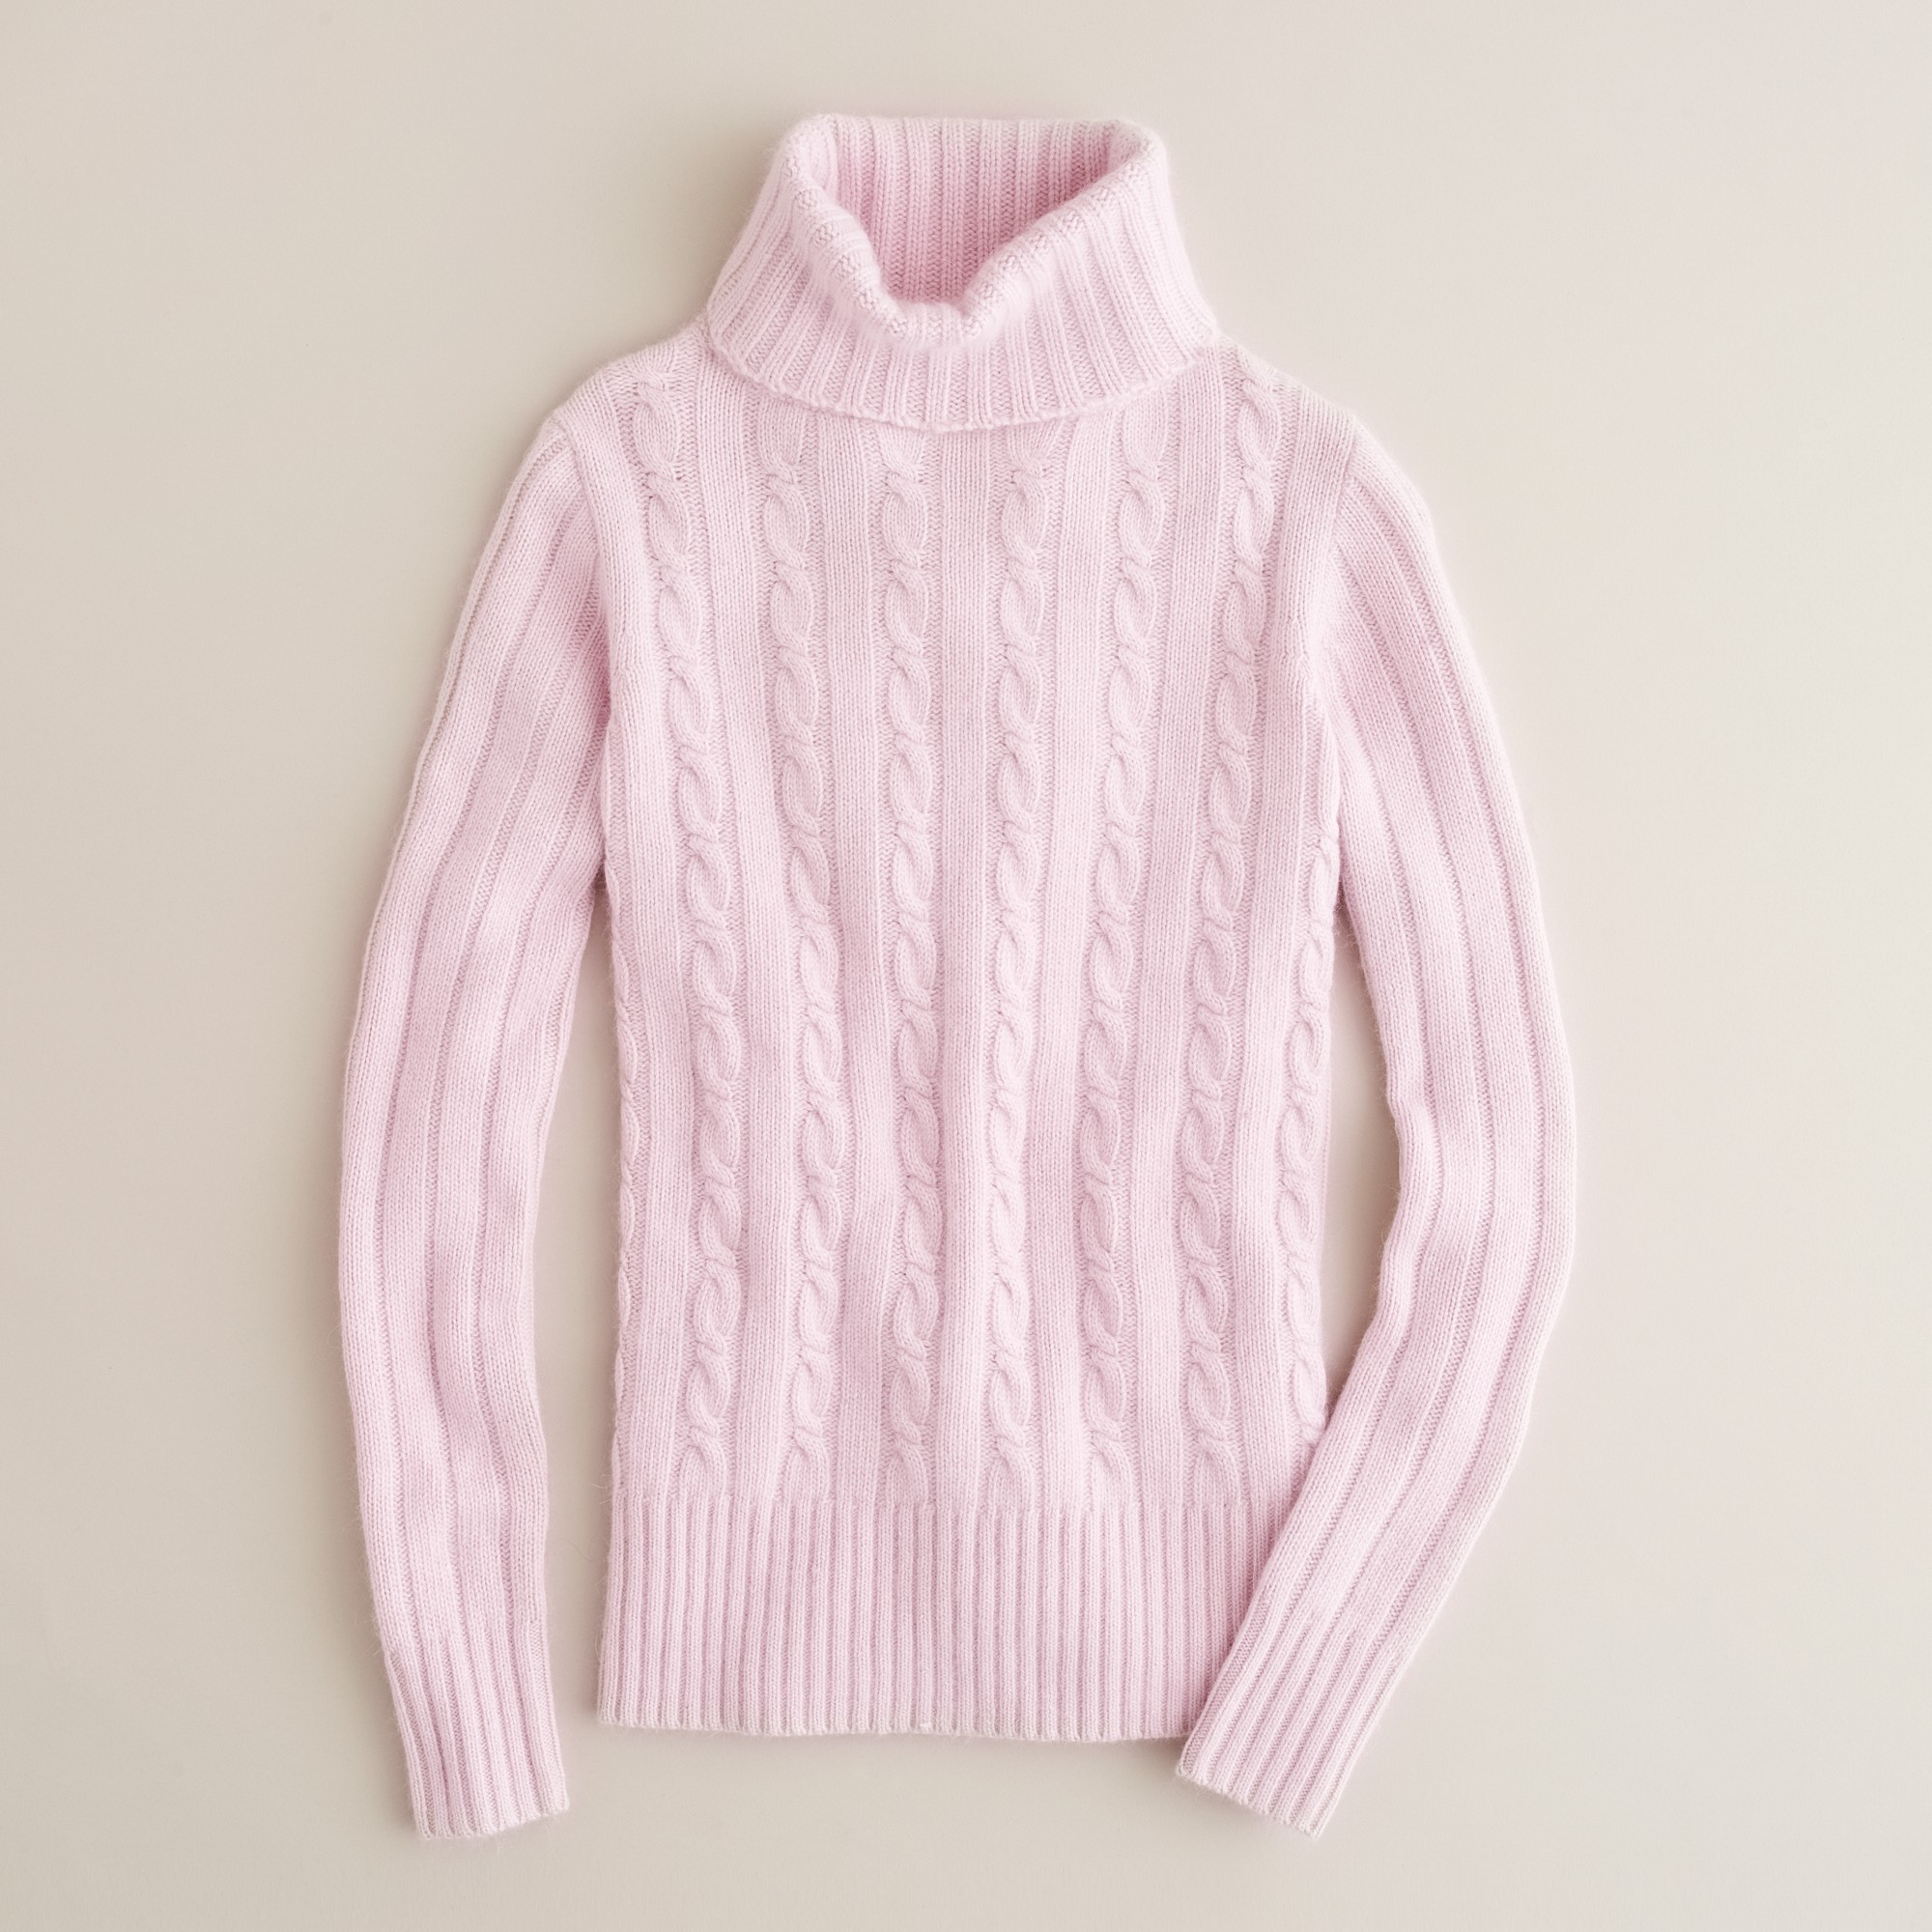 J.crew Cambridge Cable Chunky Turtleneck Sweater in Pink | Lyst